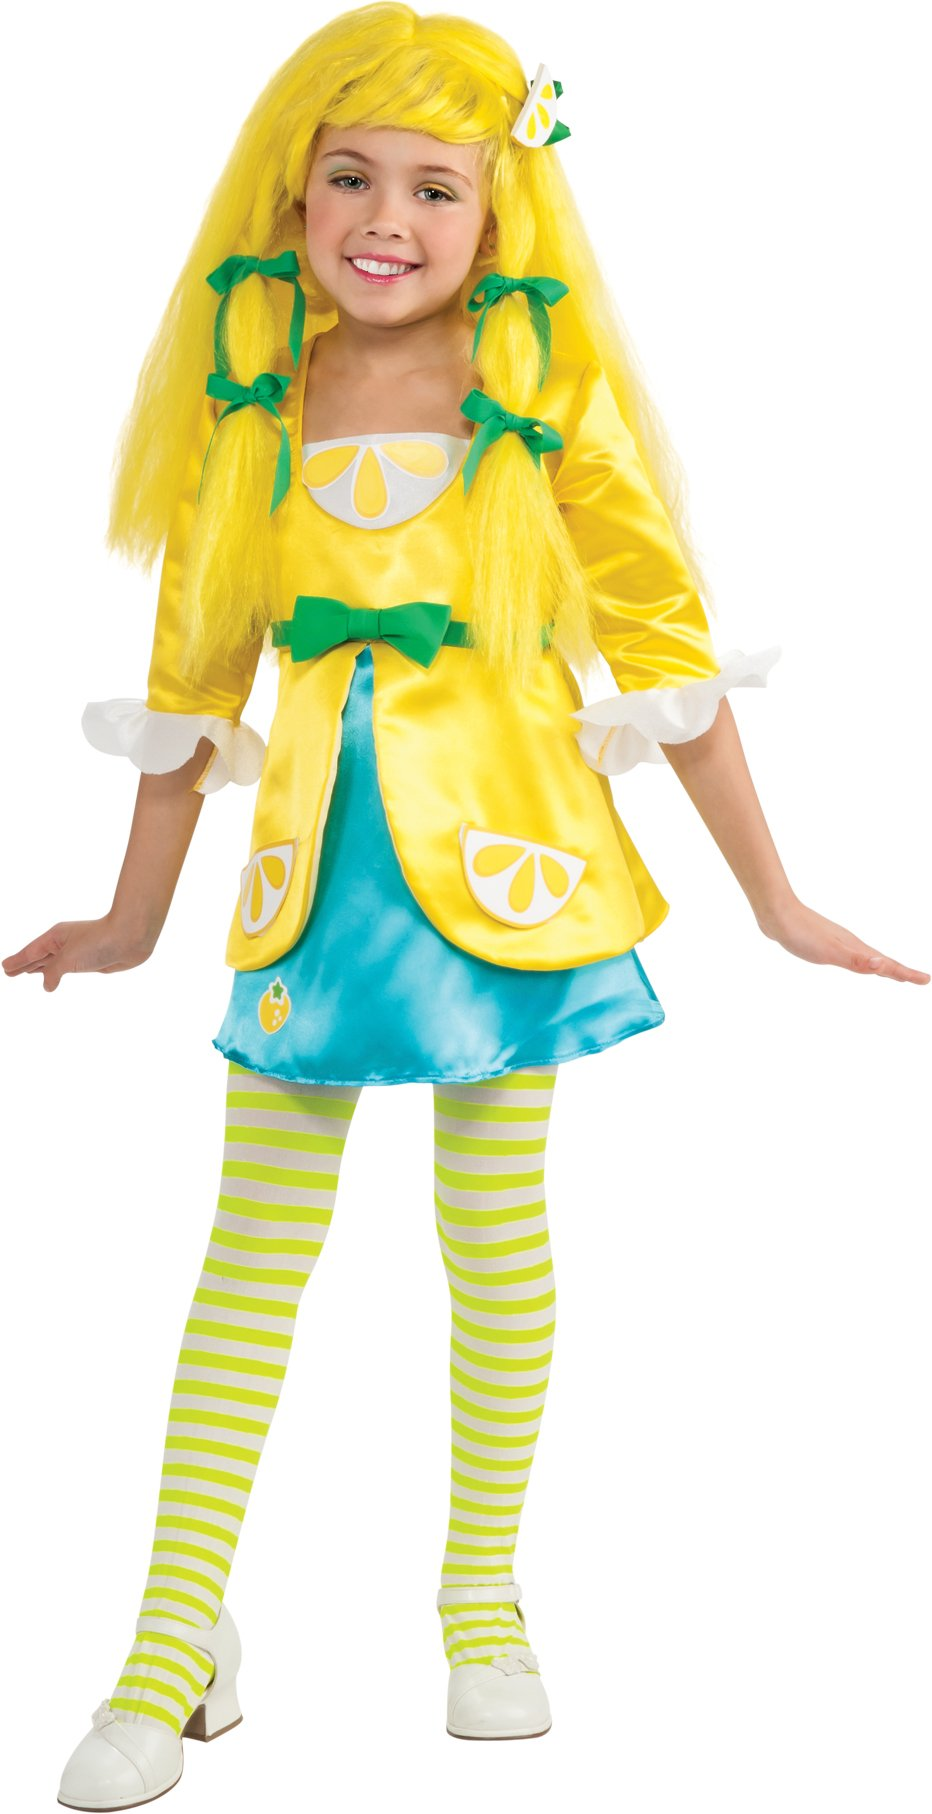 Strawberry Shortcake - Lemon Meringue Deluxe Toddler / Child Cos